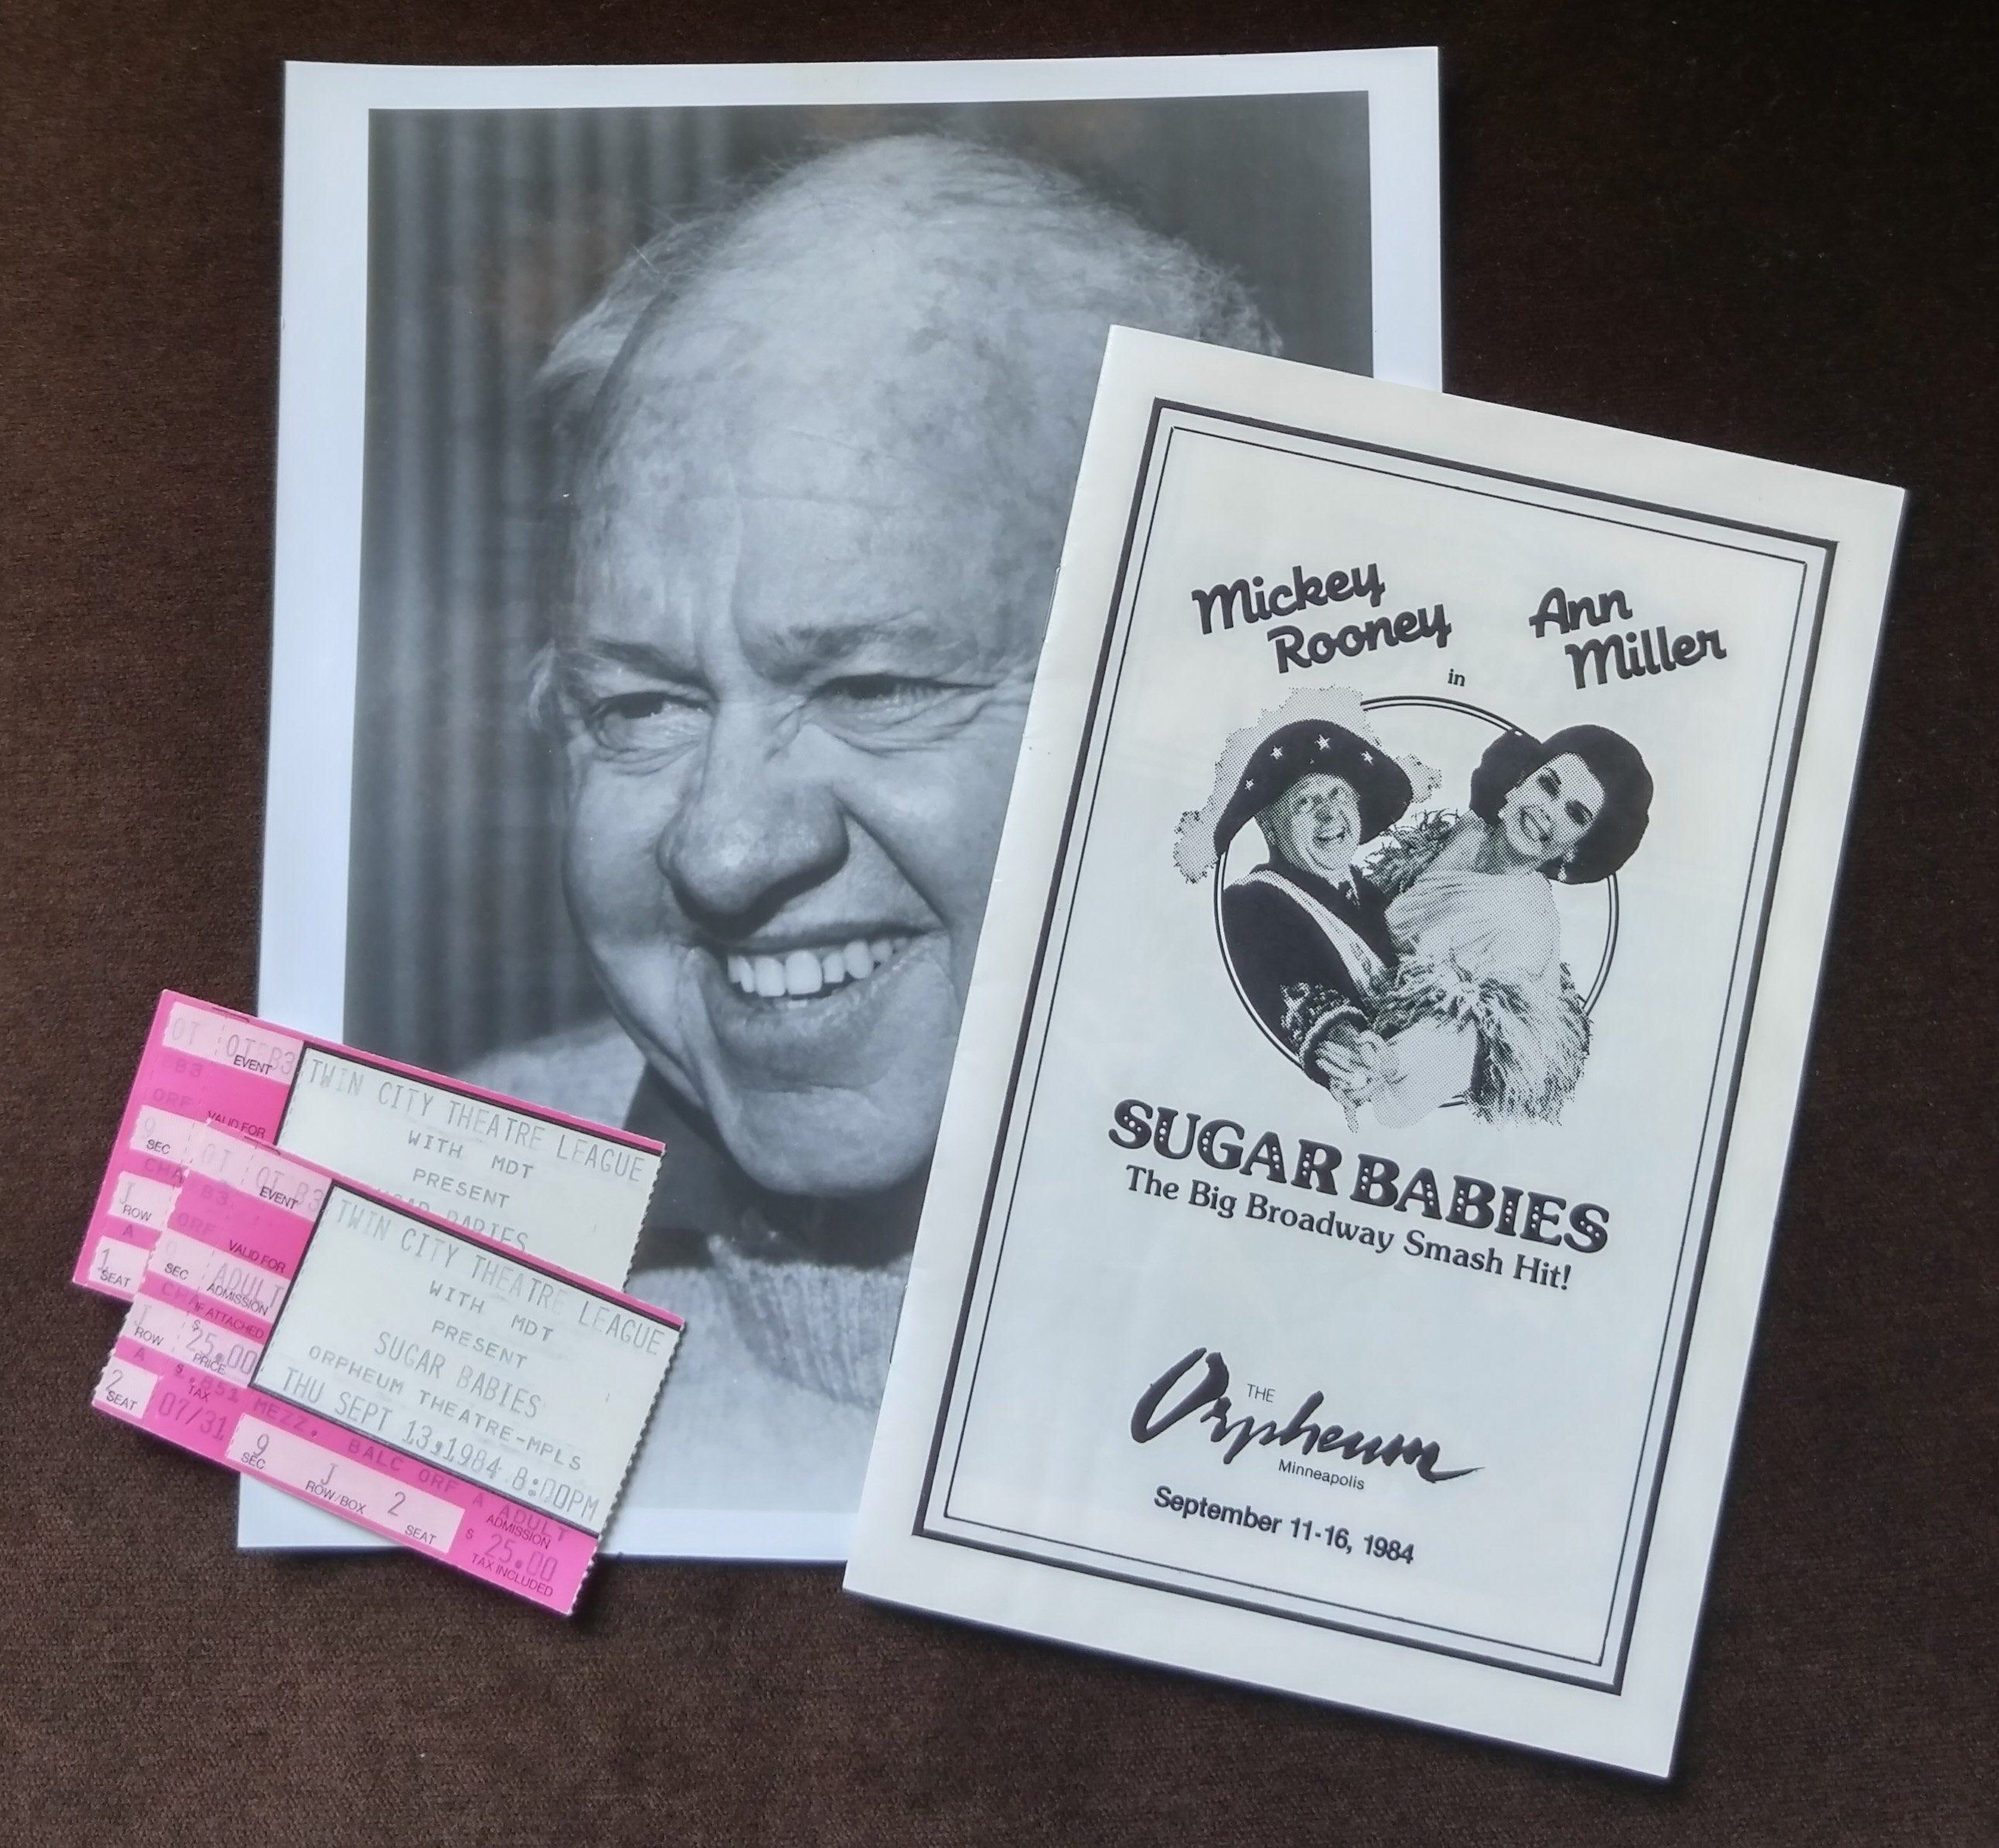 Sugar Babies Memorabilia From the Orpheum Theatre in Minneapolis, Minnesota | Publicity Photo of Mickey Rooney, Program and Ticket Stubs #babymemorabilia